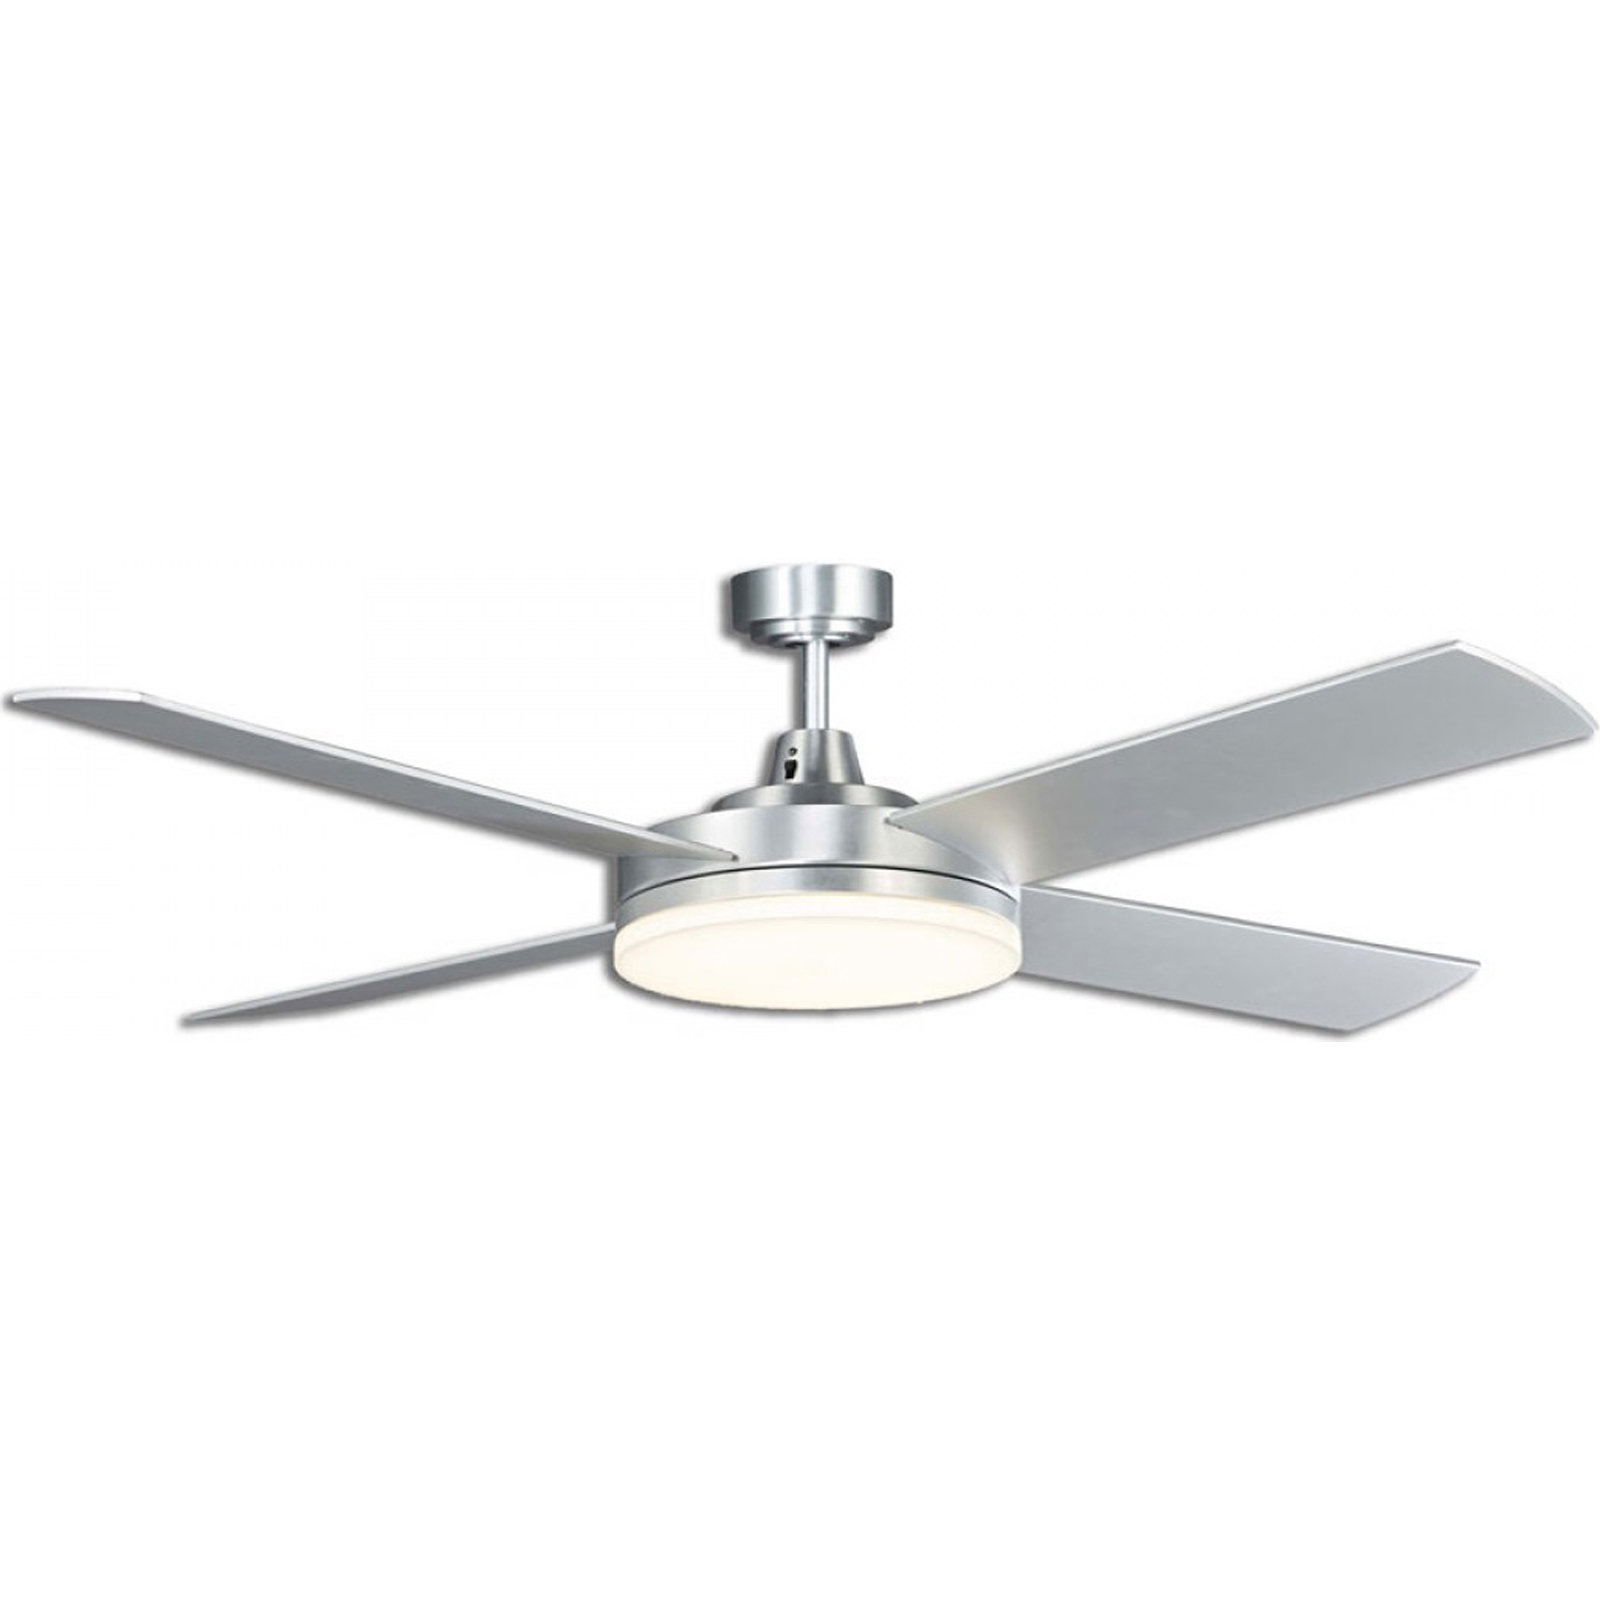 Low profile ceiling fan with light and remote democraciaejustica 25 reasons to install low profile ceiling fan light kit aloadofball Images